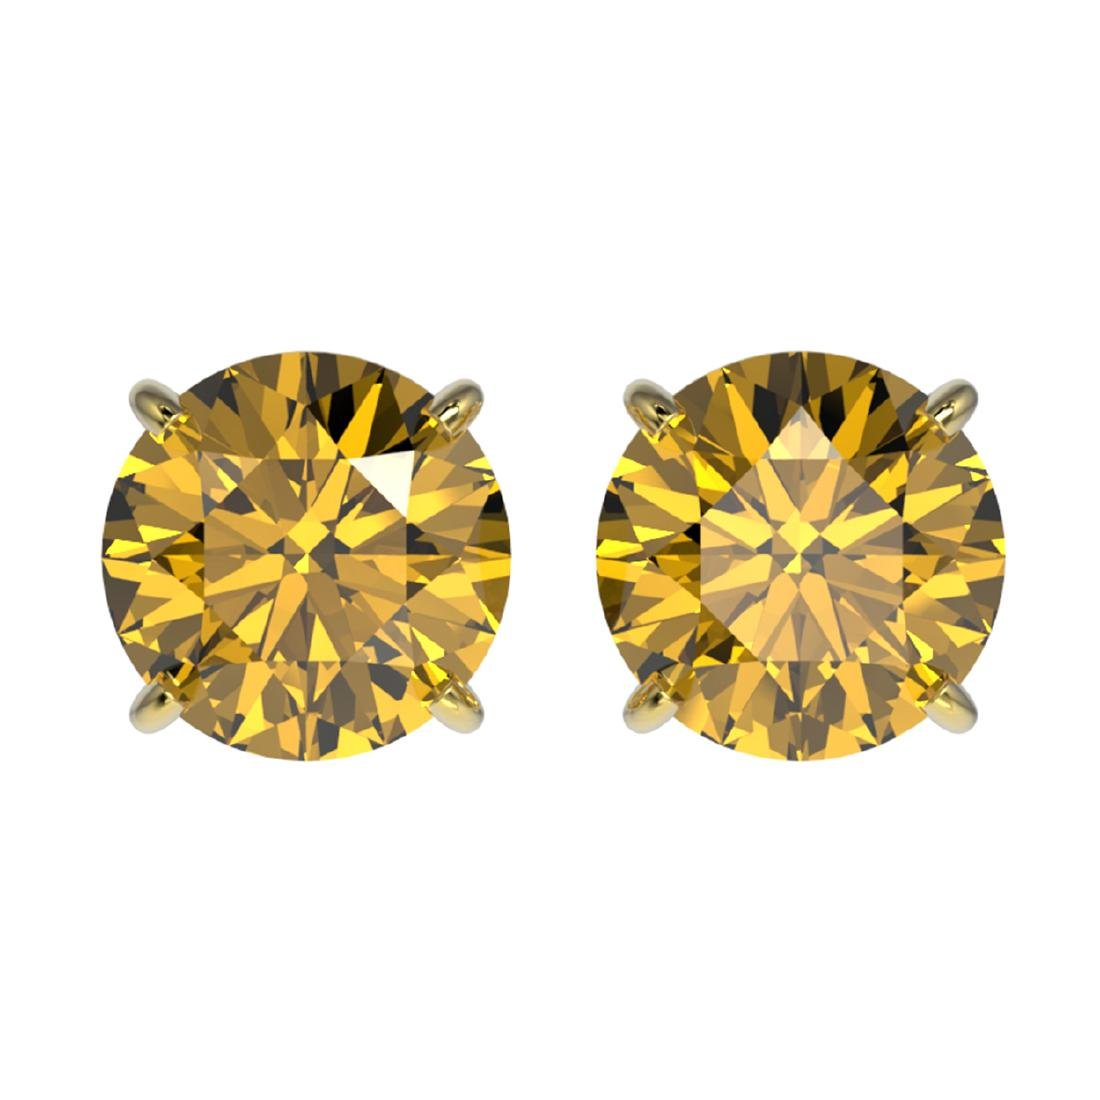 2 ctw Intense Yellow Diamond Stud Earrings 10K Yellow